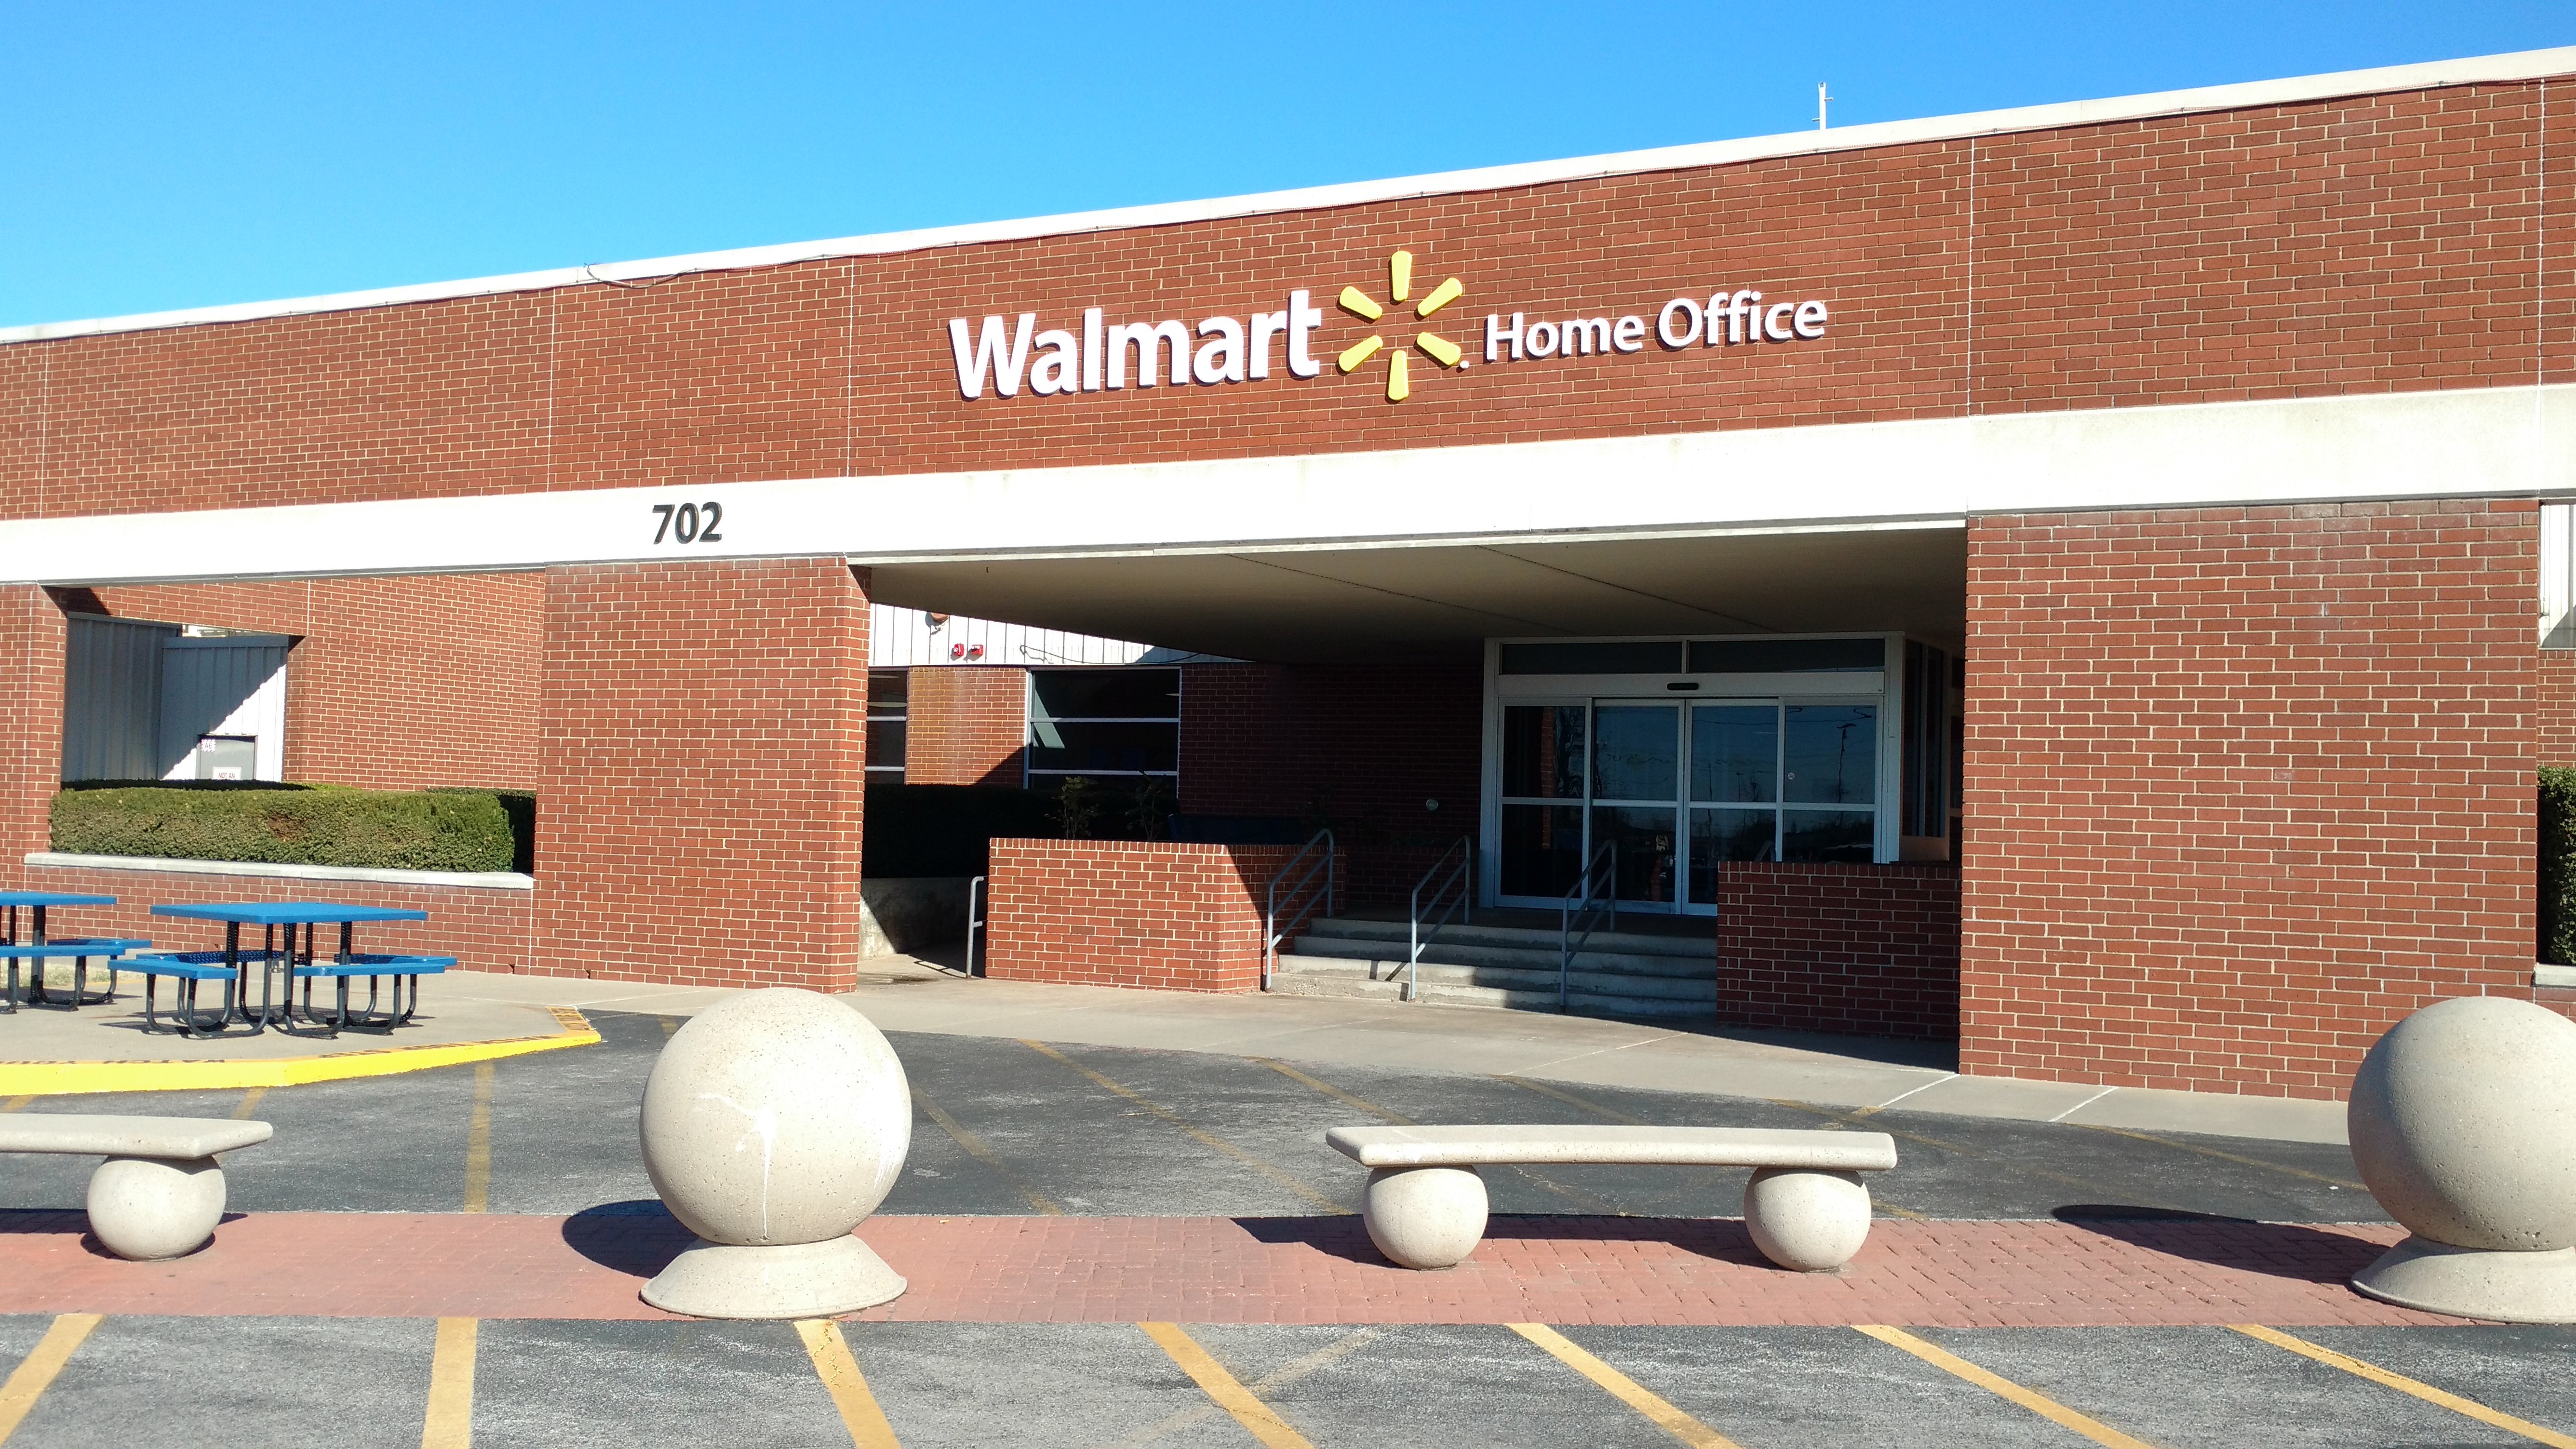 FCPA Docket: Shareholders go after Walmart for withholding documents